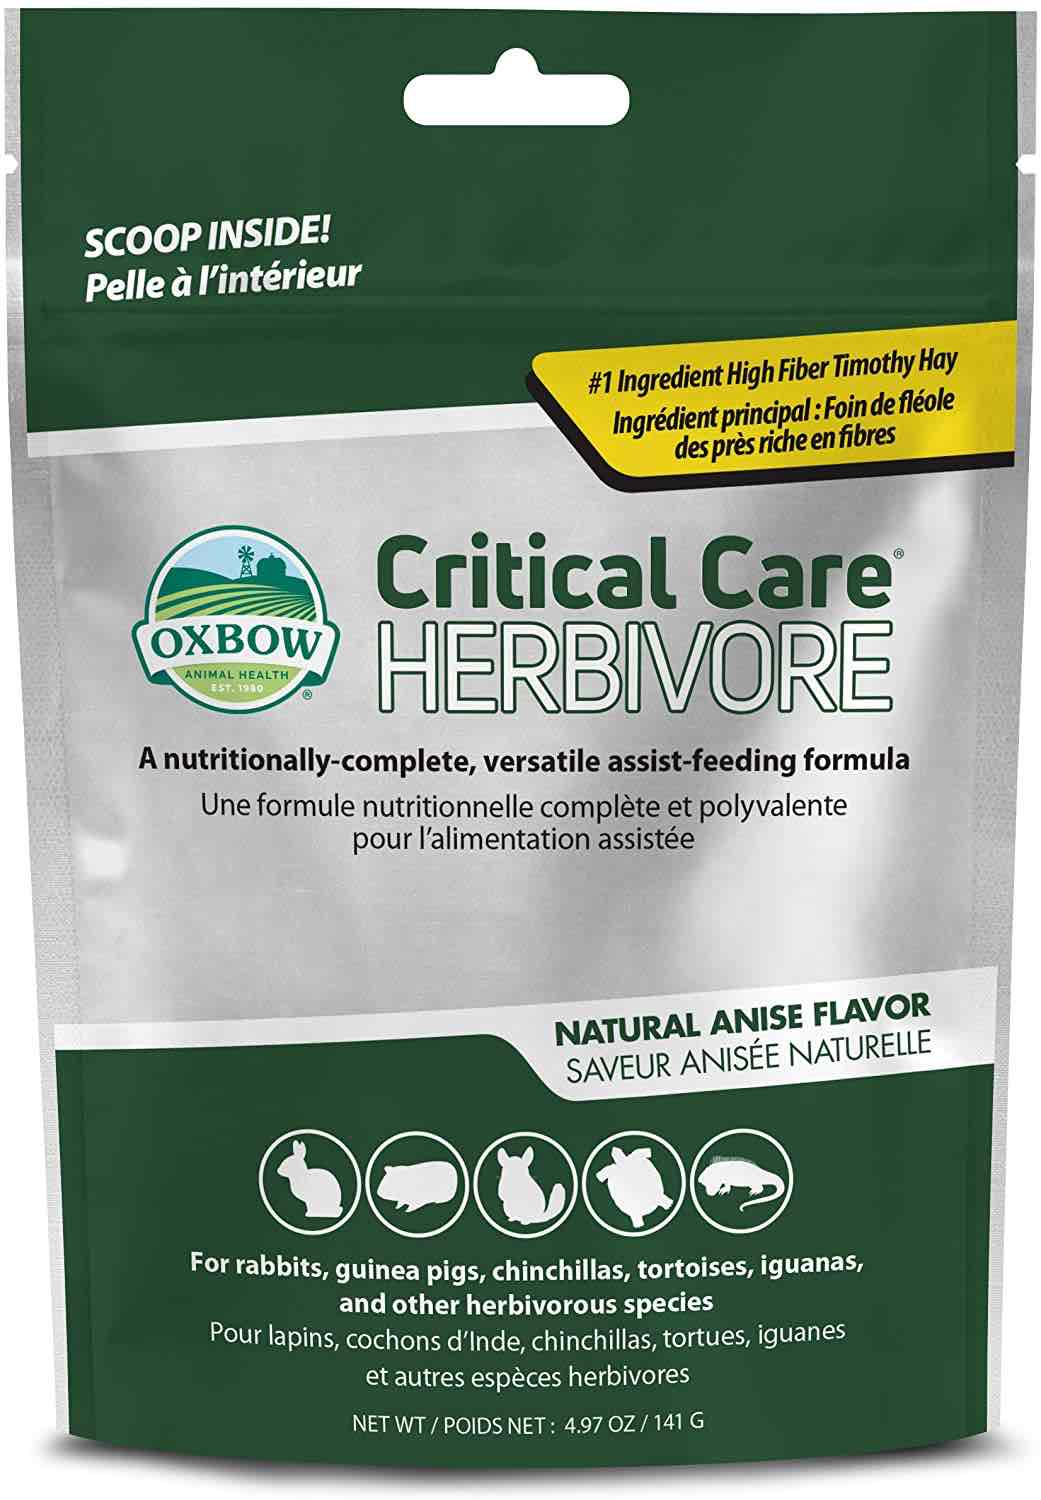 Oxbow Critical Care Herbivore 4.97 oz (141 g) bag Anise 1